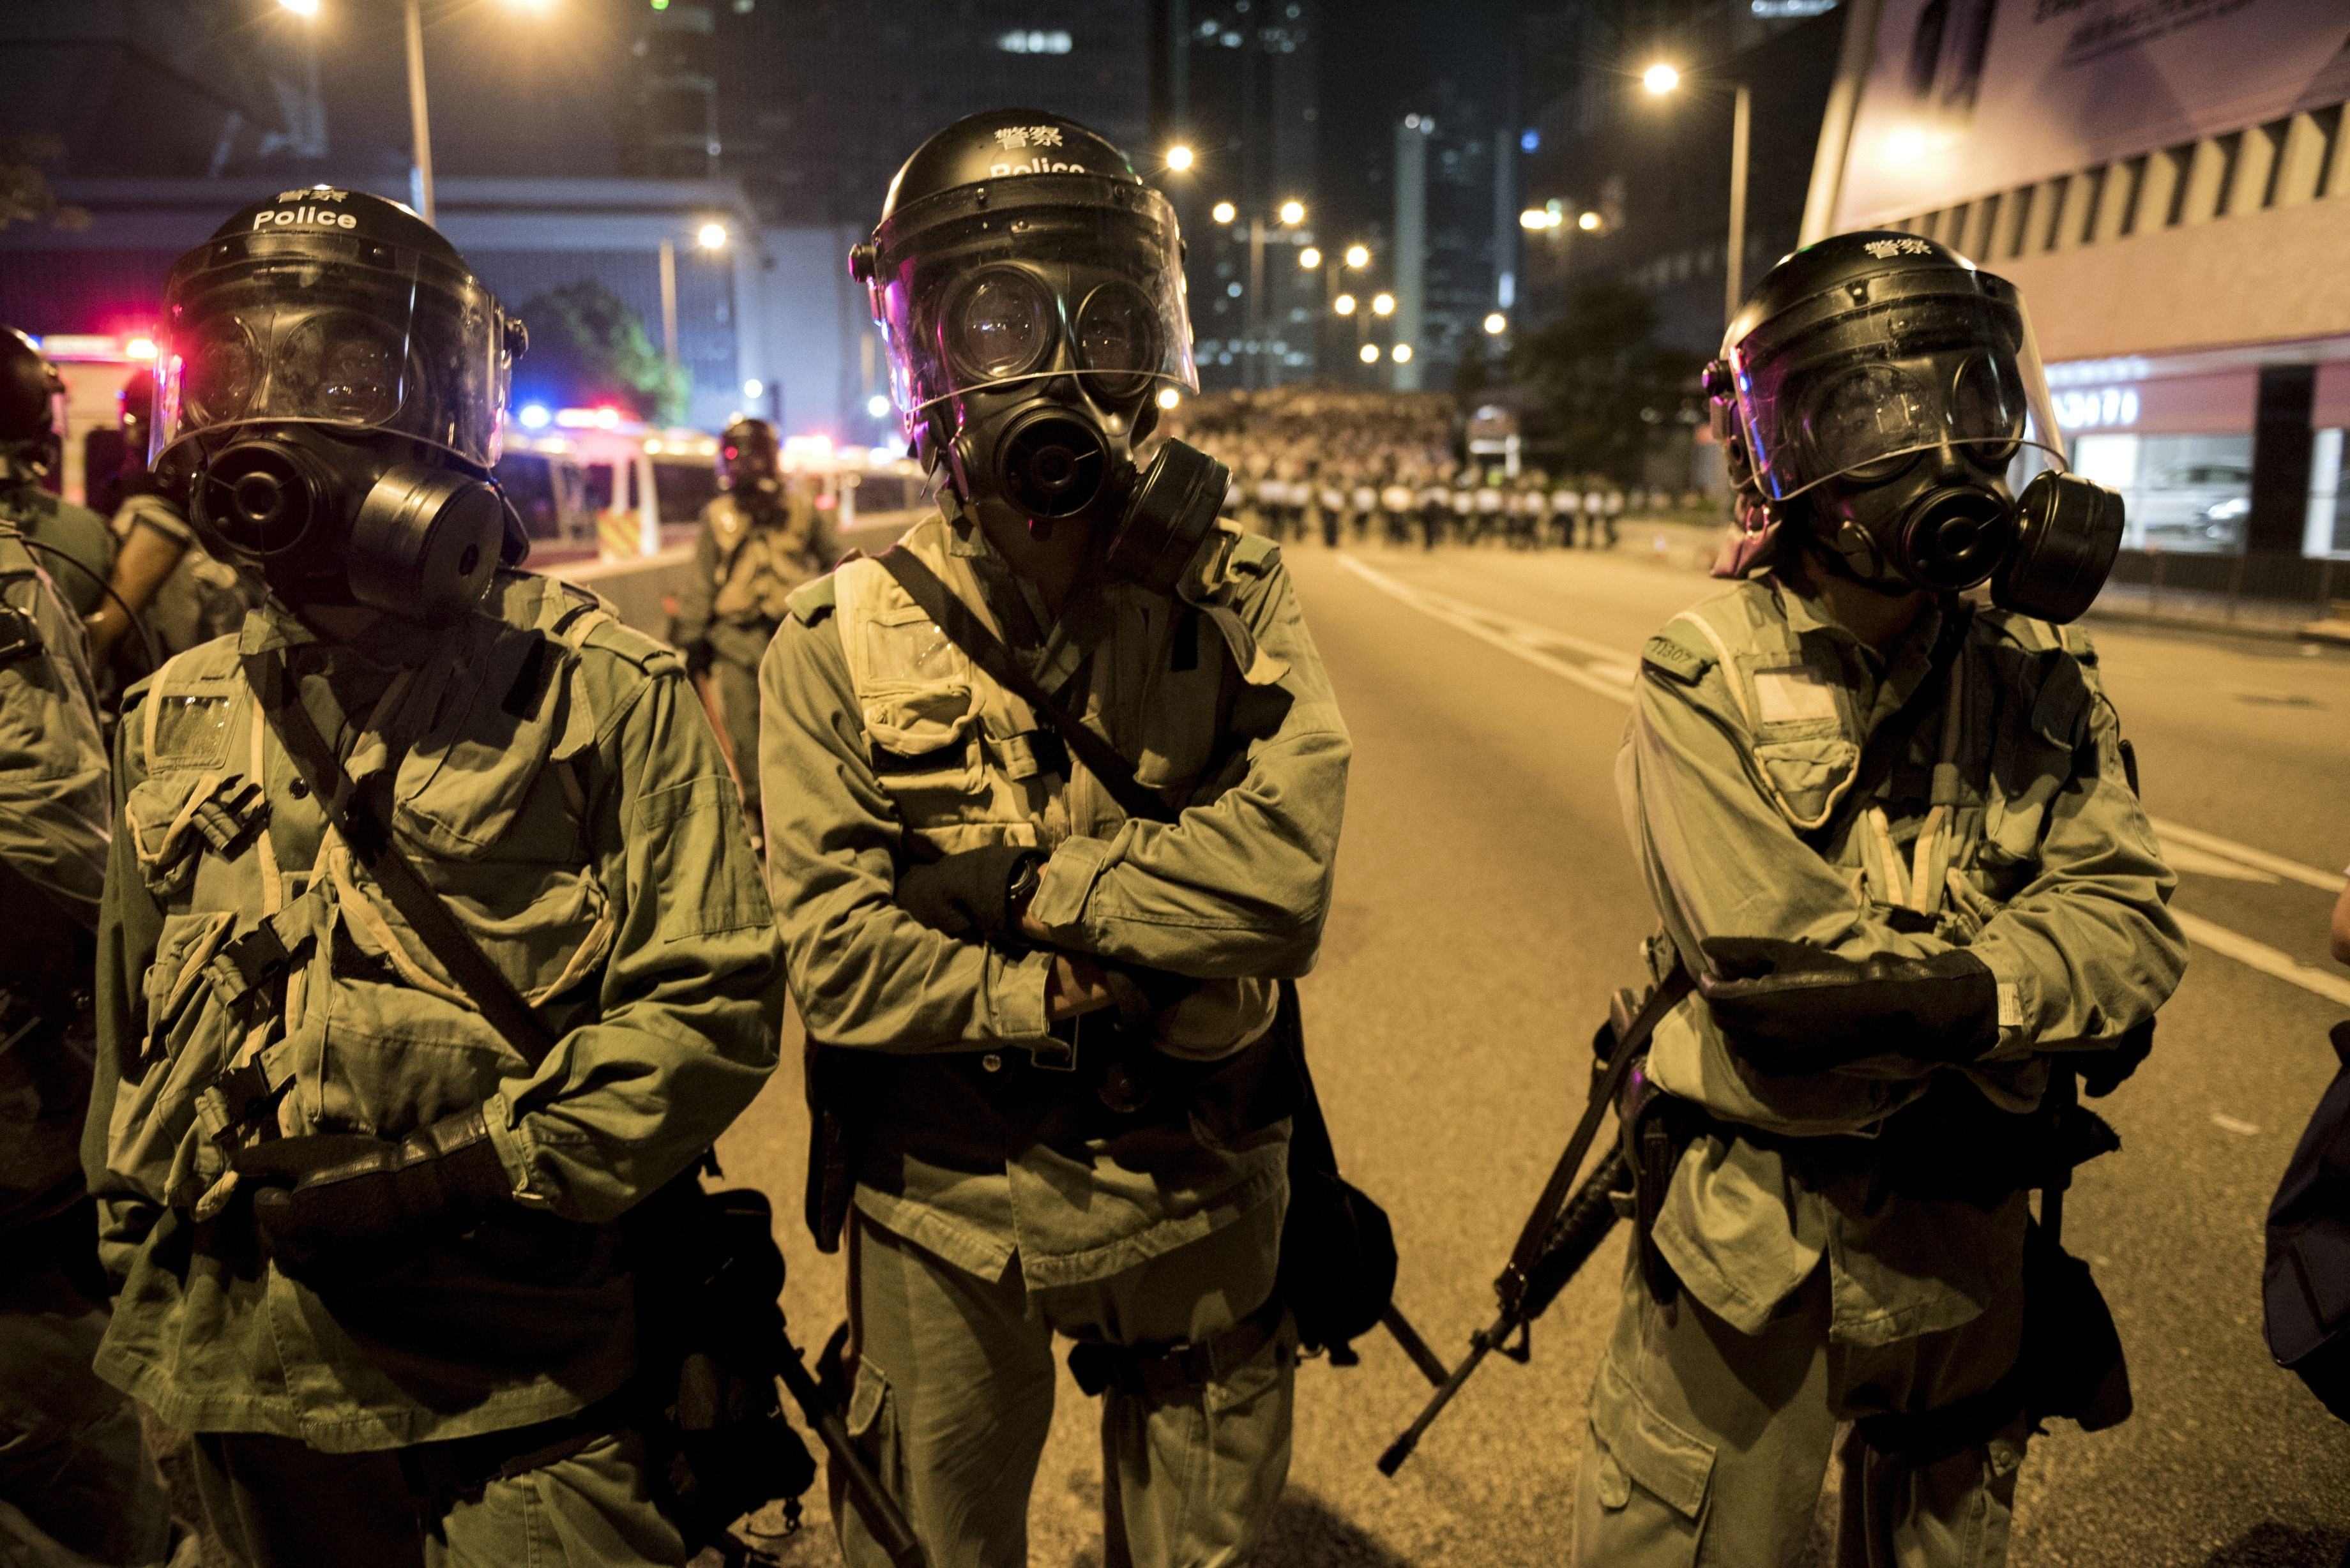 Police officers face off with pro-democracy protesters in Hong Kong on Sept. 28, 2014